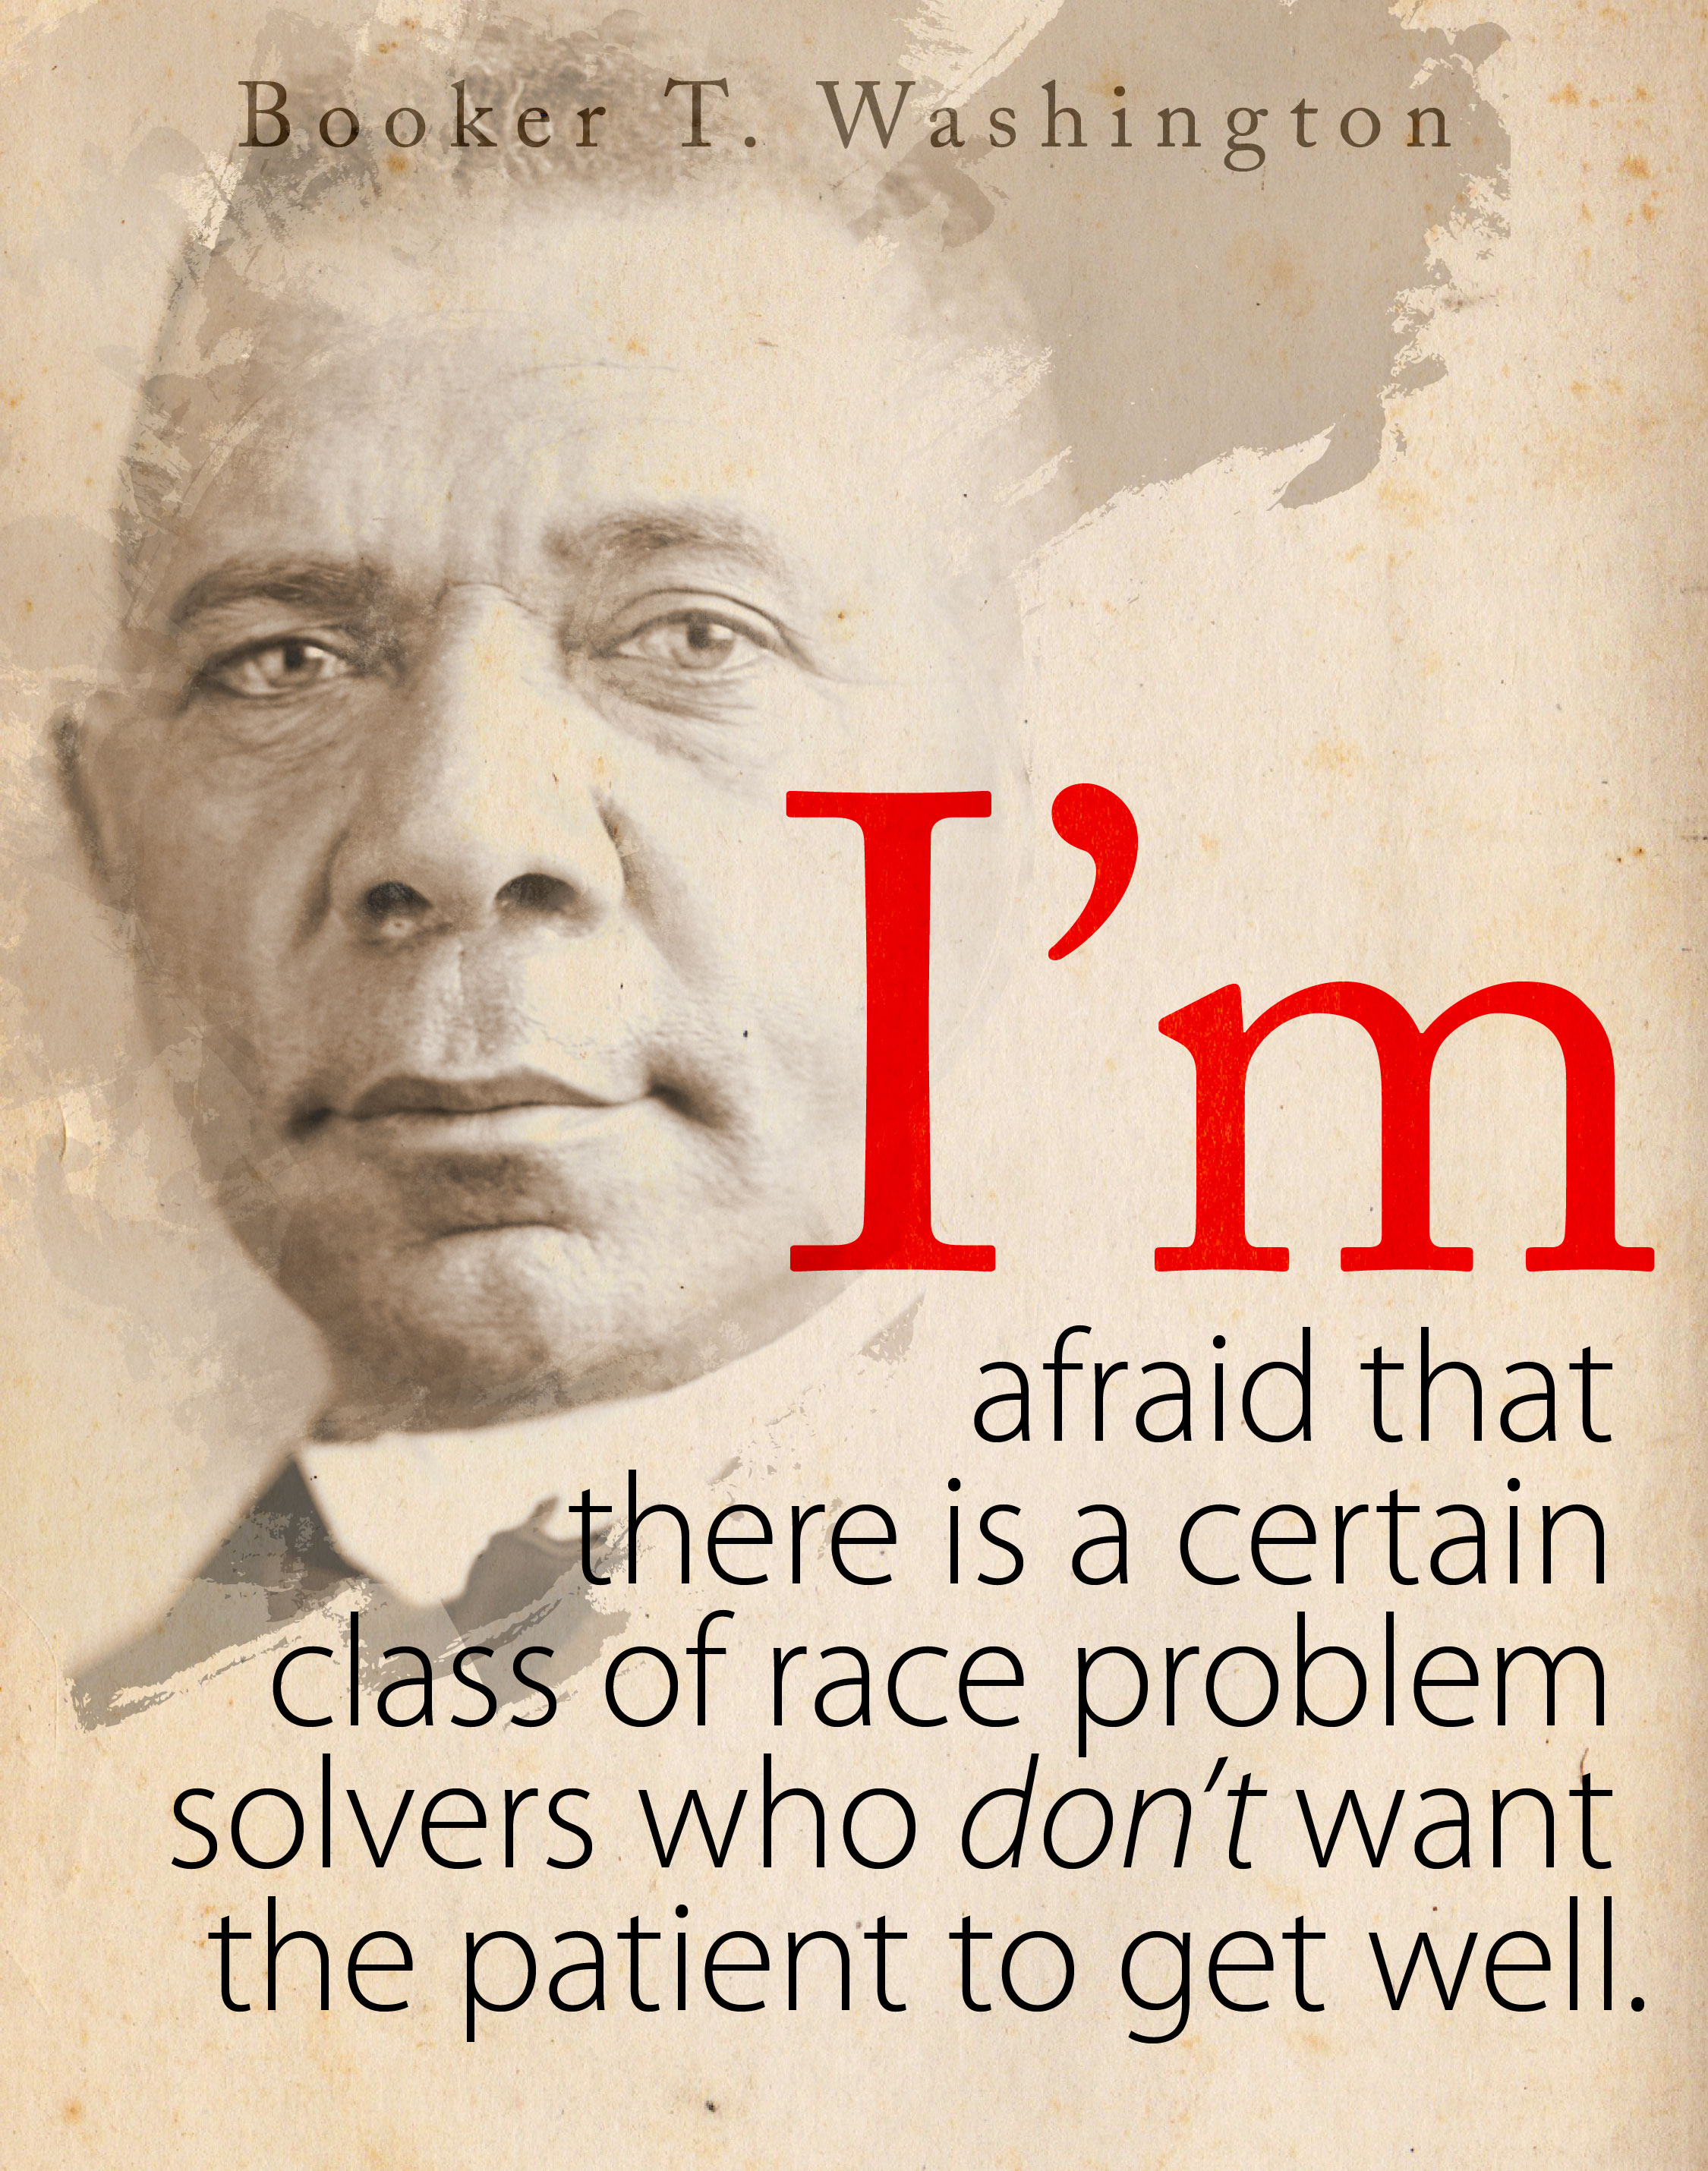 Booker T. Washington's quote #3